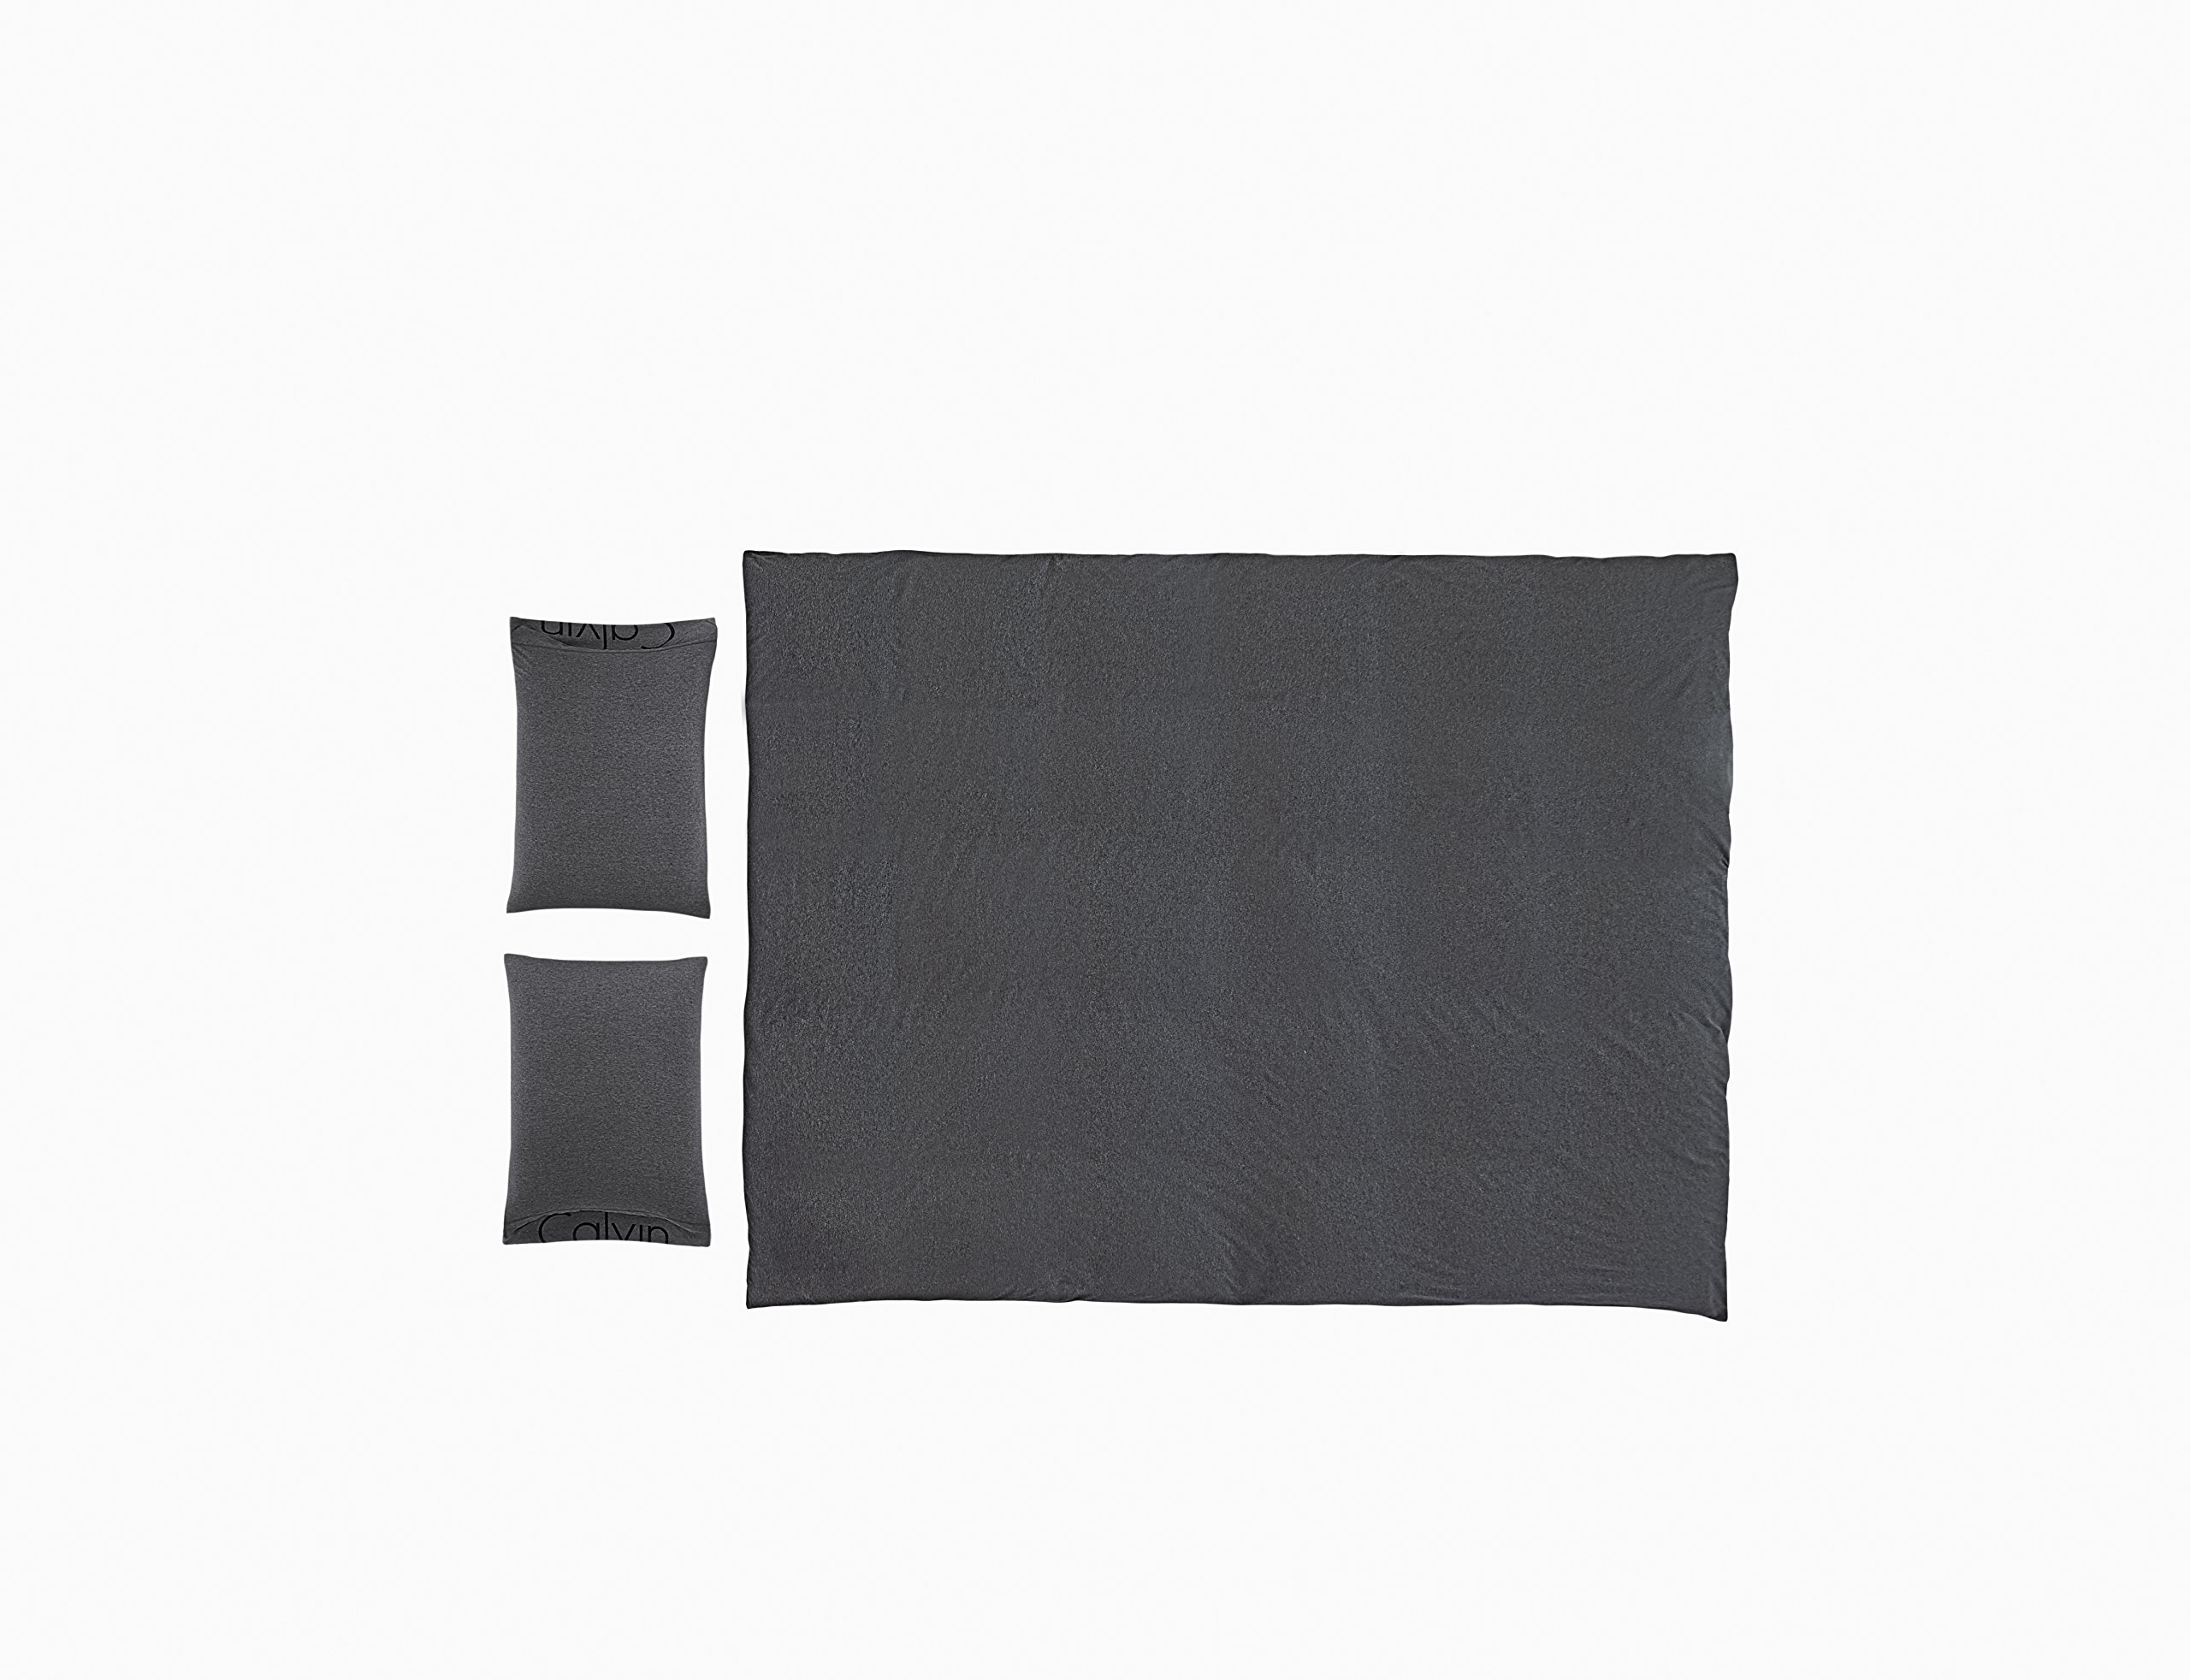 Calvin Klein Home Modern Cotton Body Duvet Cover, King, Charcoal by Calvin Klein (Image #2)